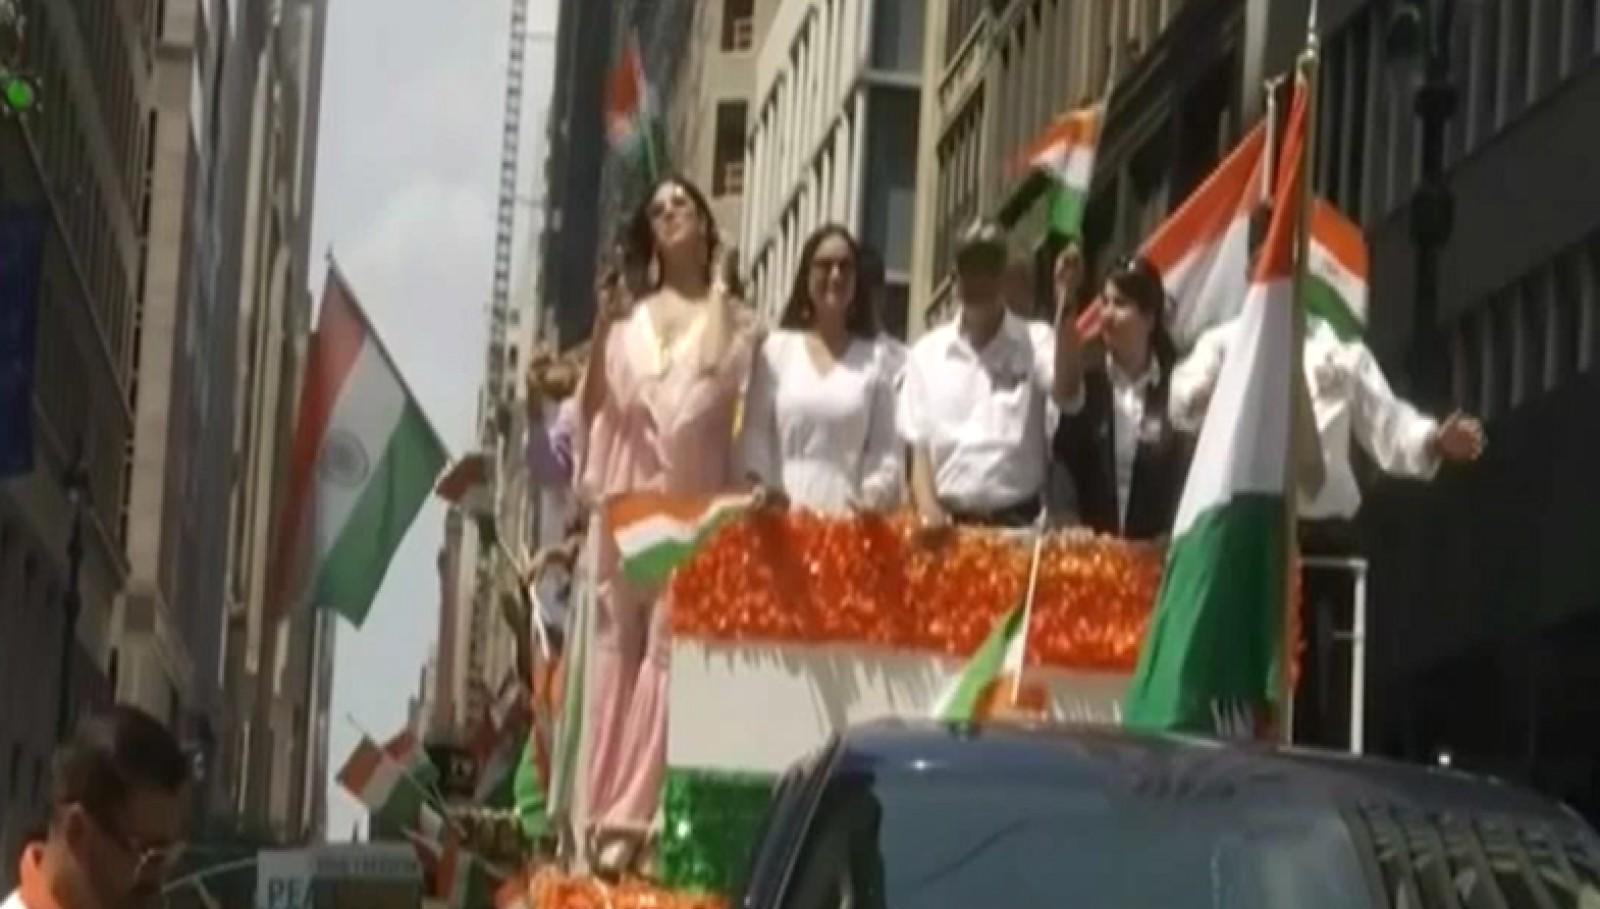 39th-india-day-parade-in-new-york-honours-soldiers-and-their-bravery